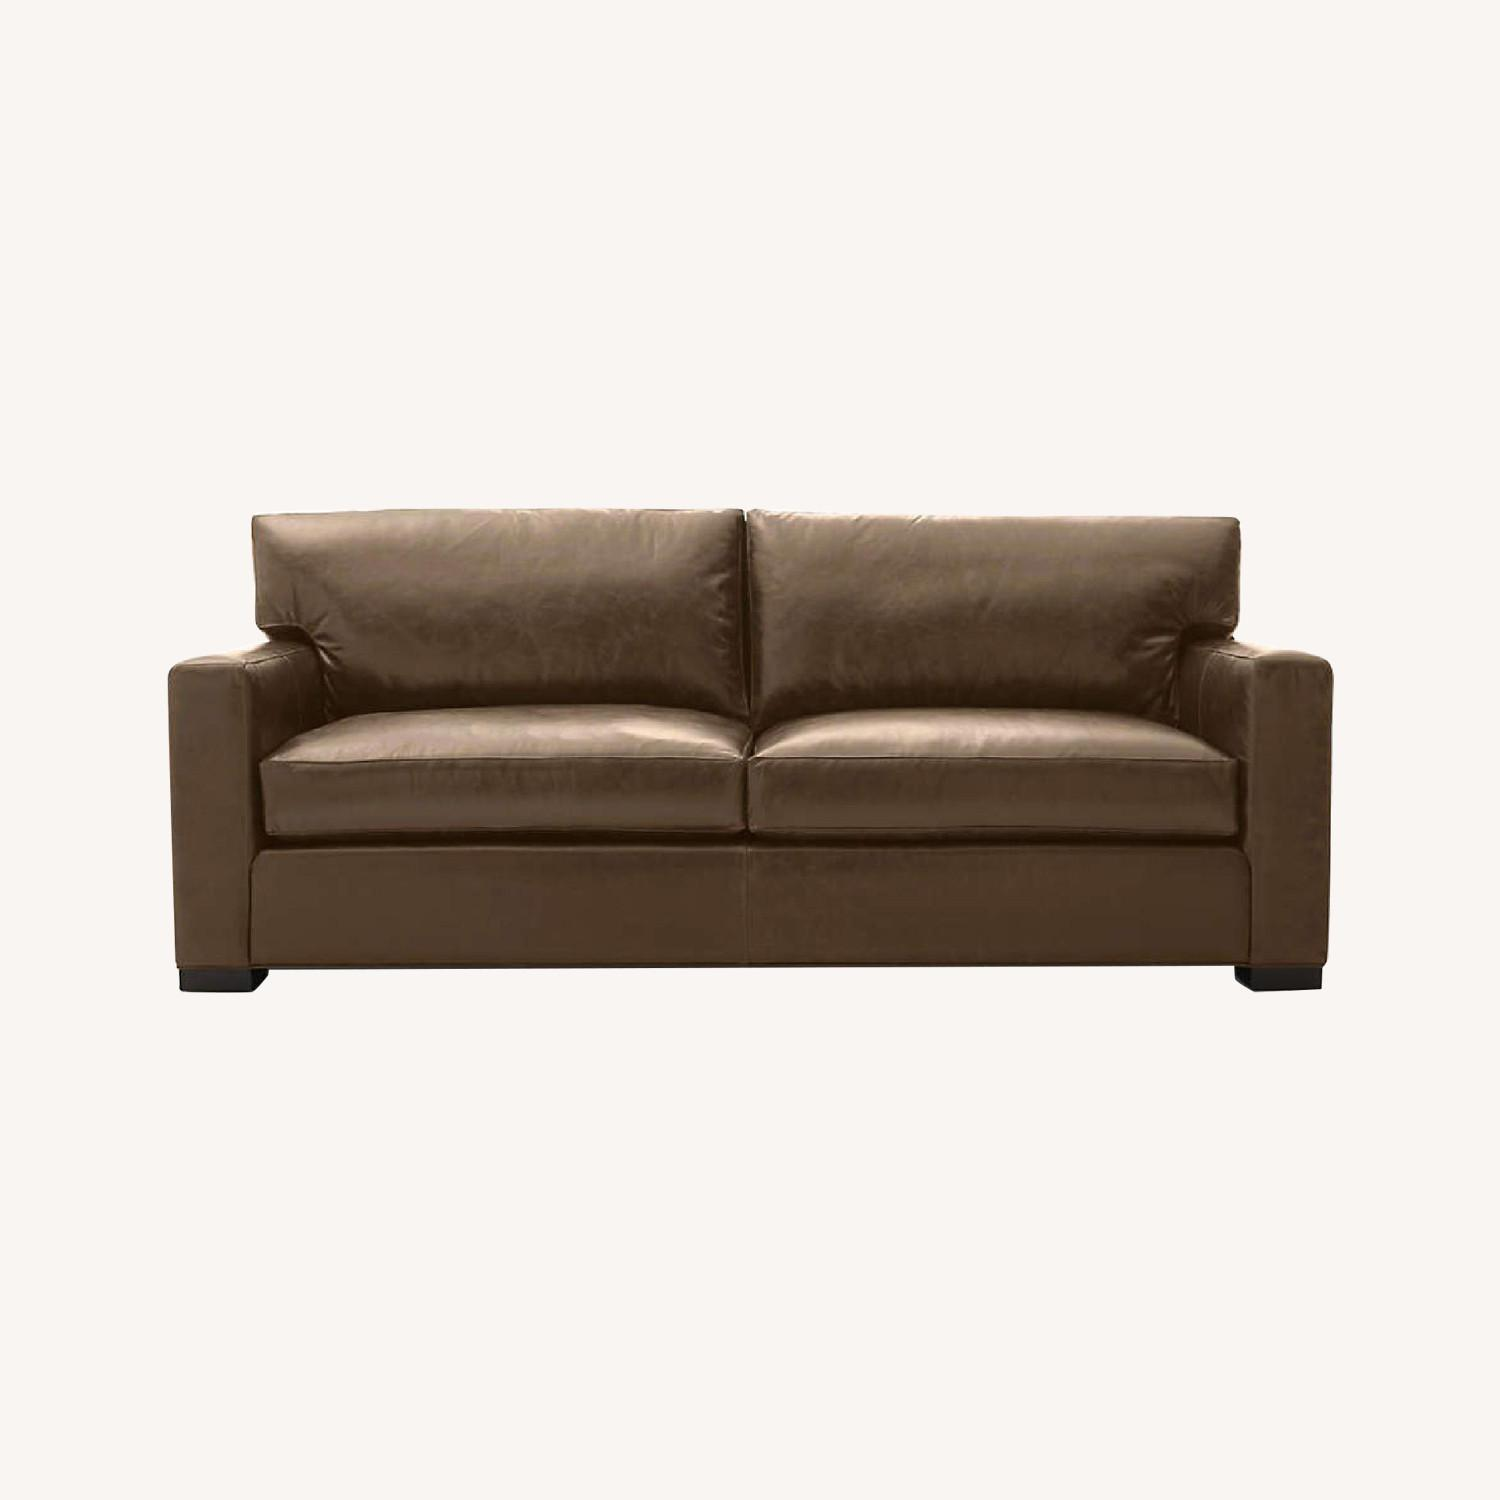 Crate and Barrel Axis Leather Sofa - image-0